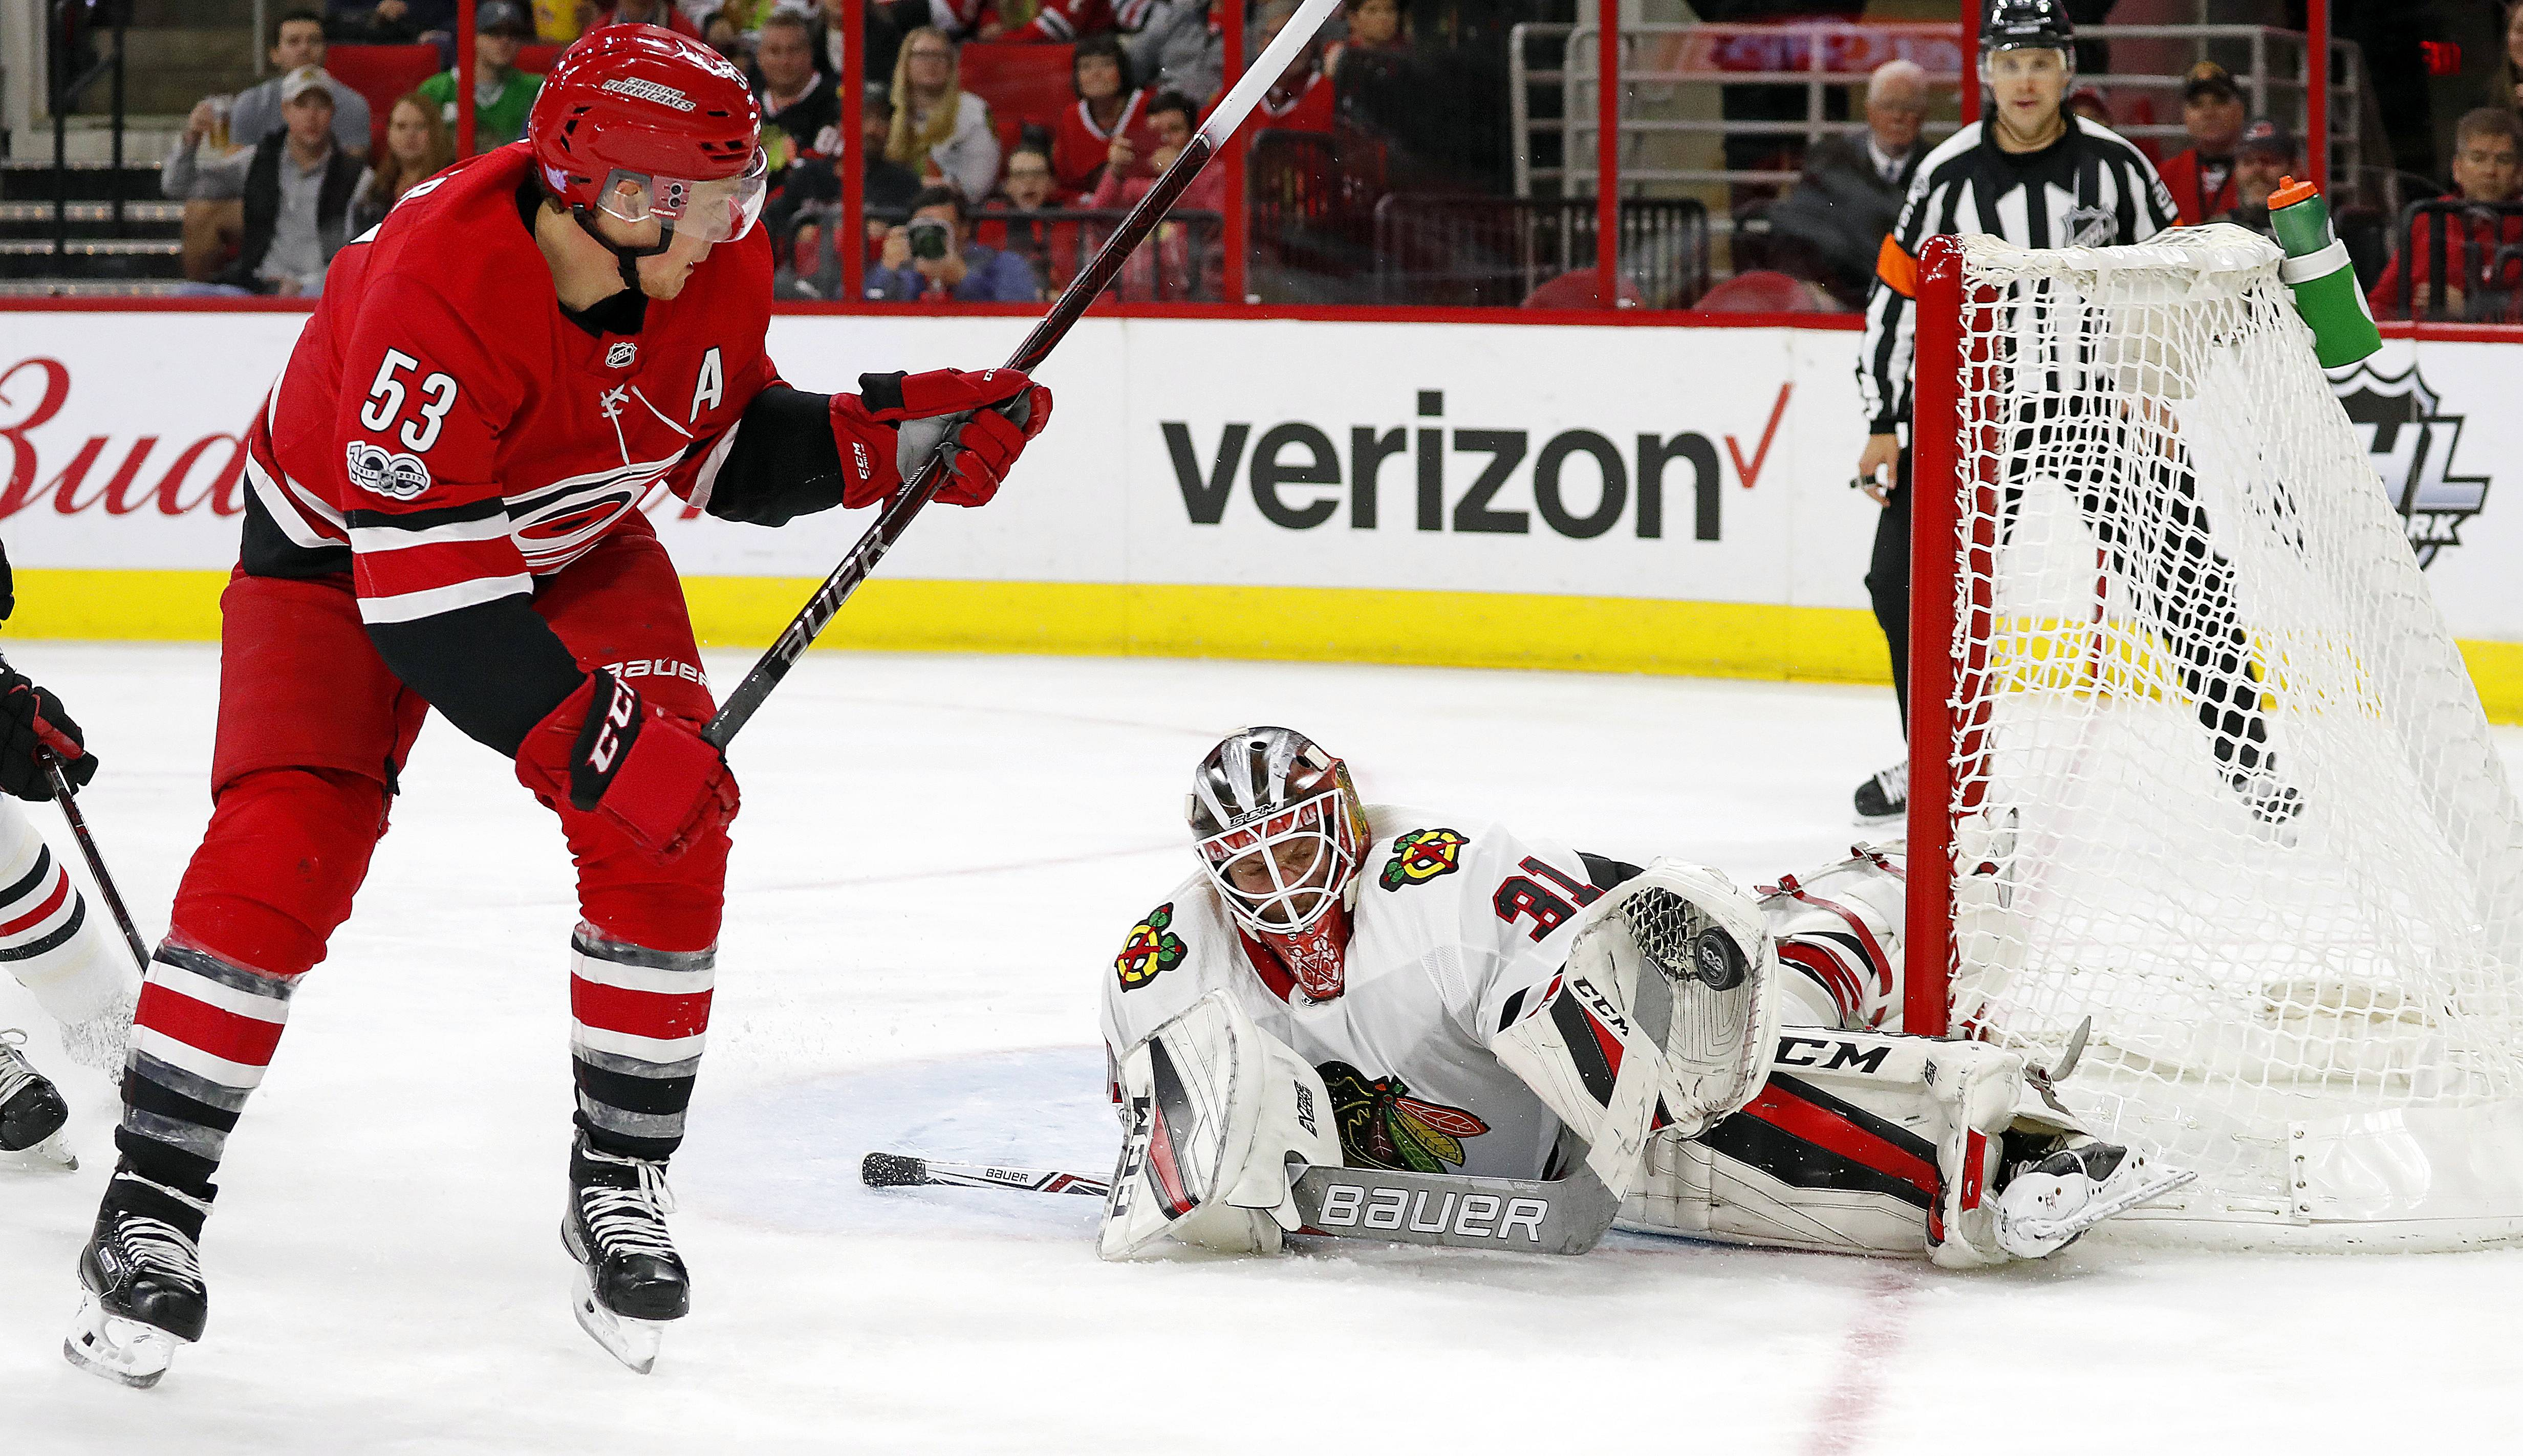 Chicago Blackhawks goalie Anton Forsberg got his first win with the Blackhawks Saturday night in Carolina, something coach Joel Quenneville thinks will help boost his confidence in the future.